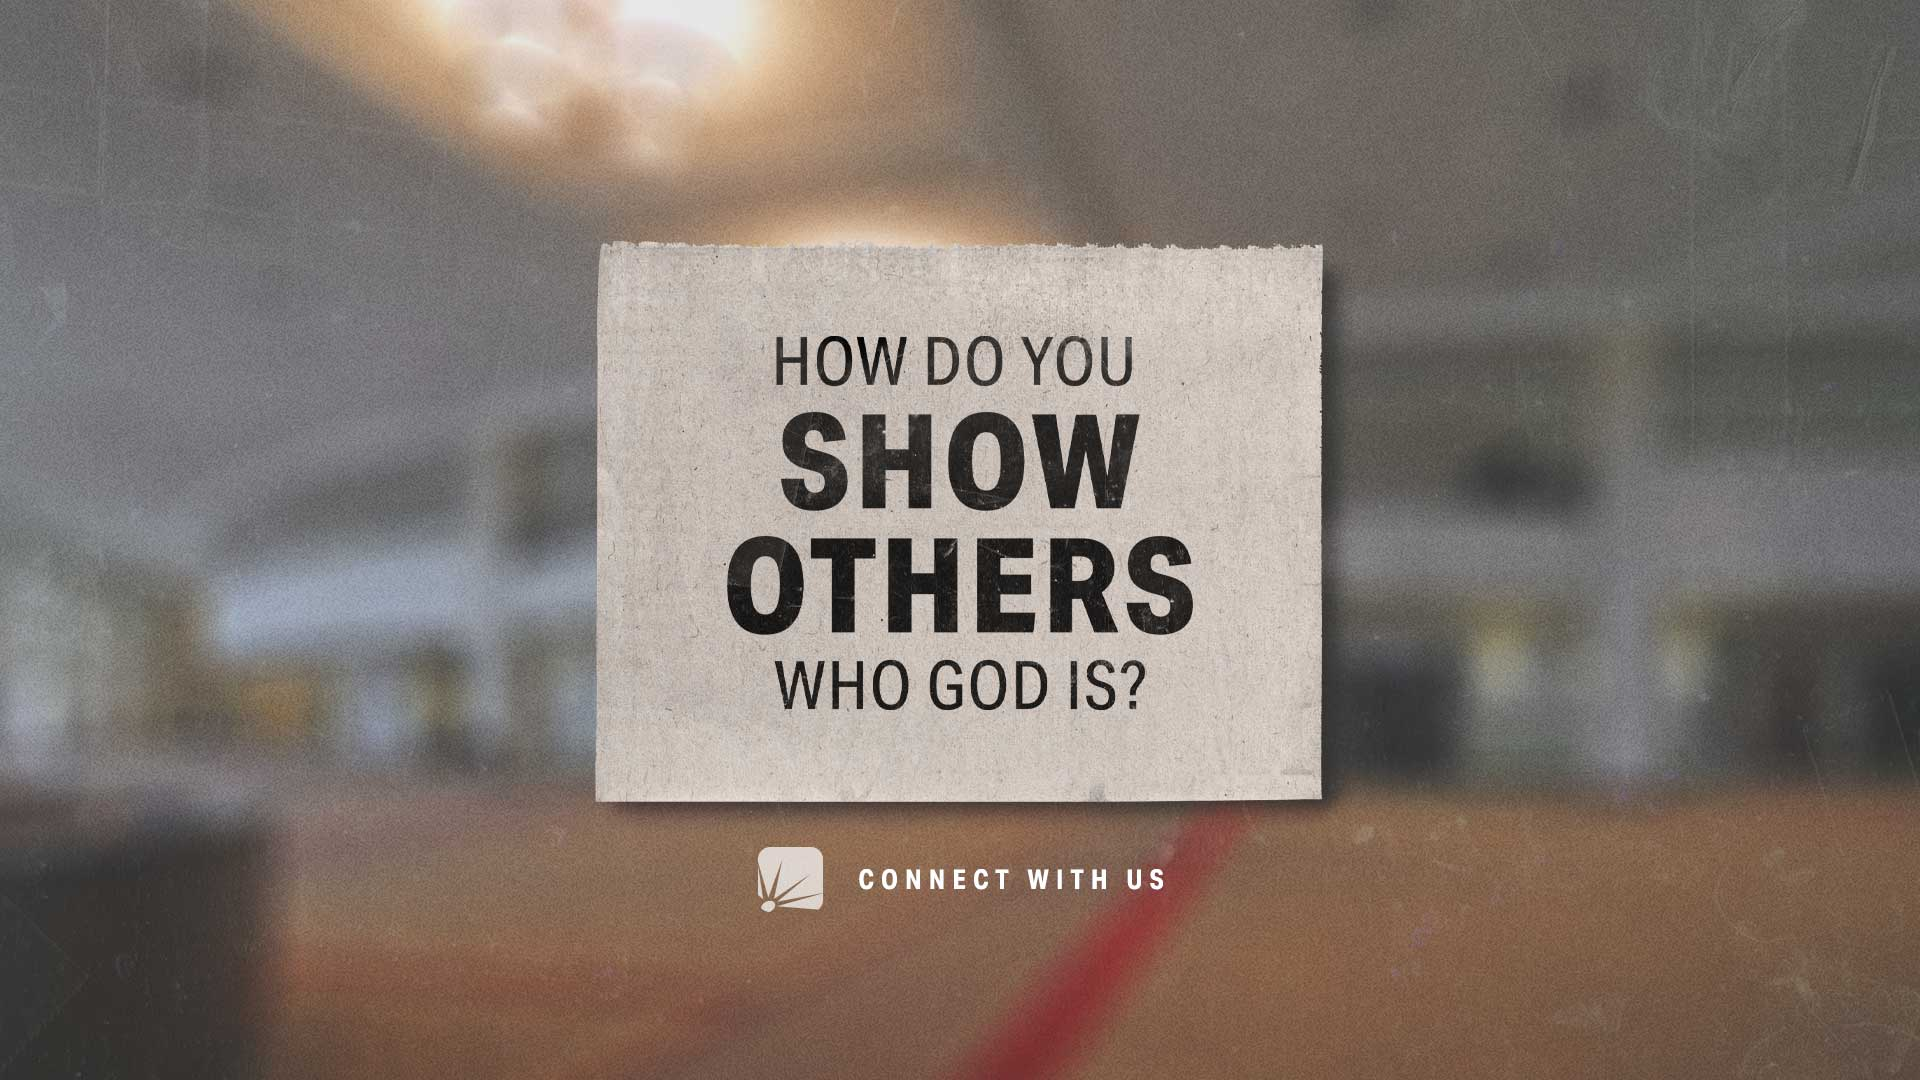 How do you show others who God is?